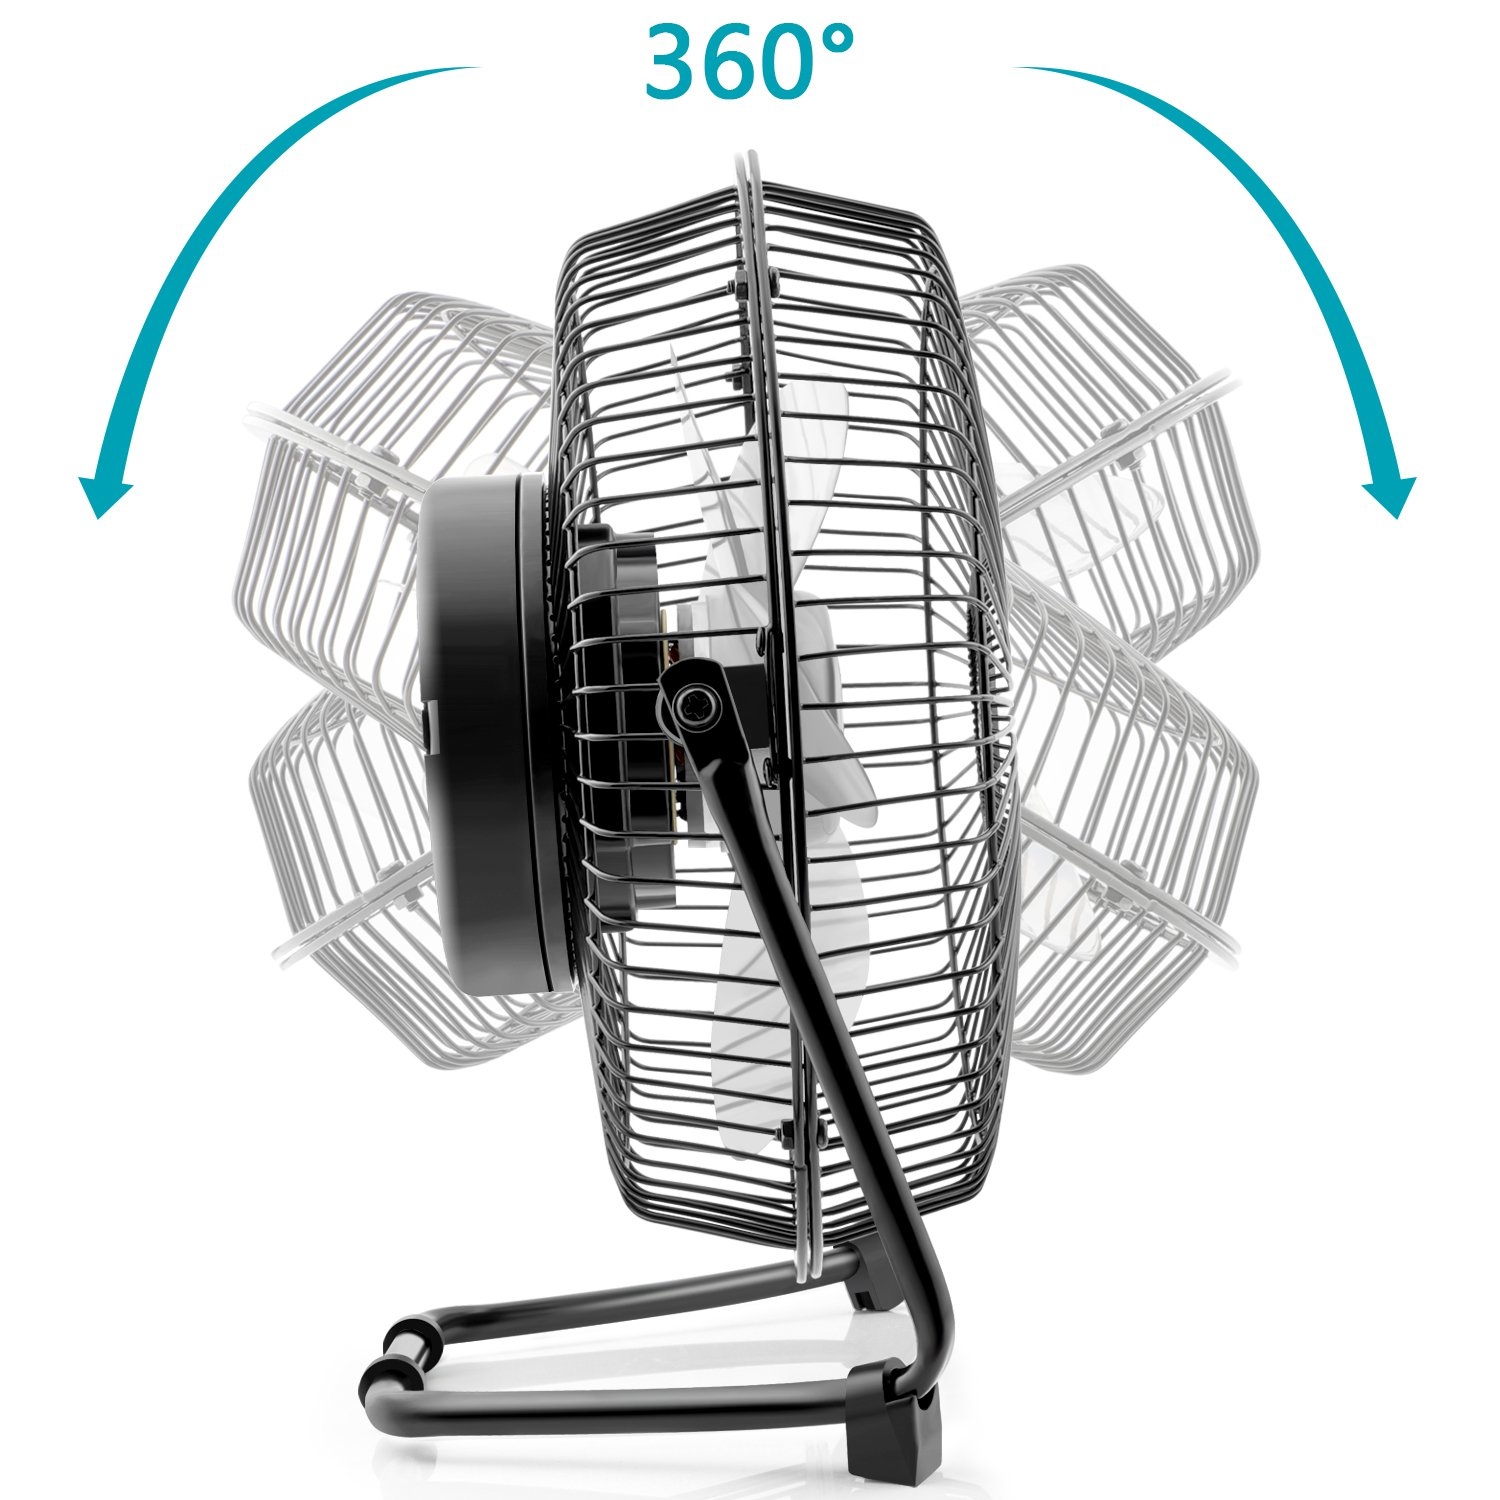 OPOLAR 9 inch USB Rechargeable Desk Fan with 6700mAh Capacity, Long Working Time, Good Airflow,Whisper Quiet, Two Settings, Personal Cooling Fan for Home & Office & Hurricane & Camping by OPOLAR (Image #6)